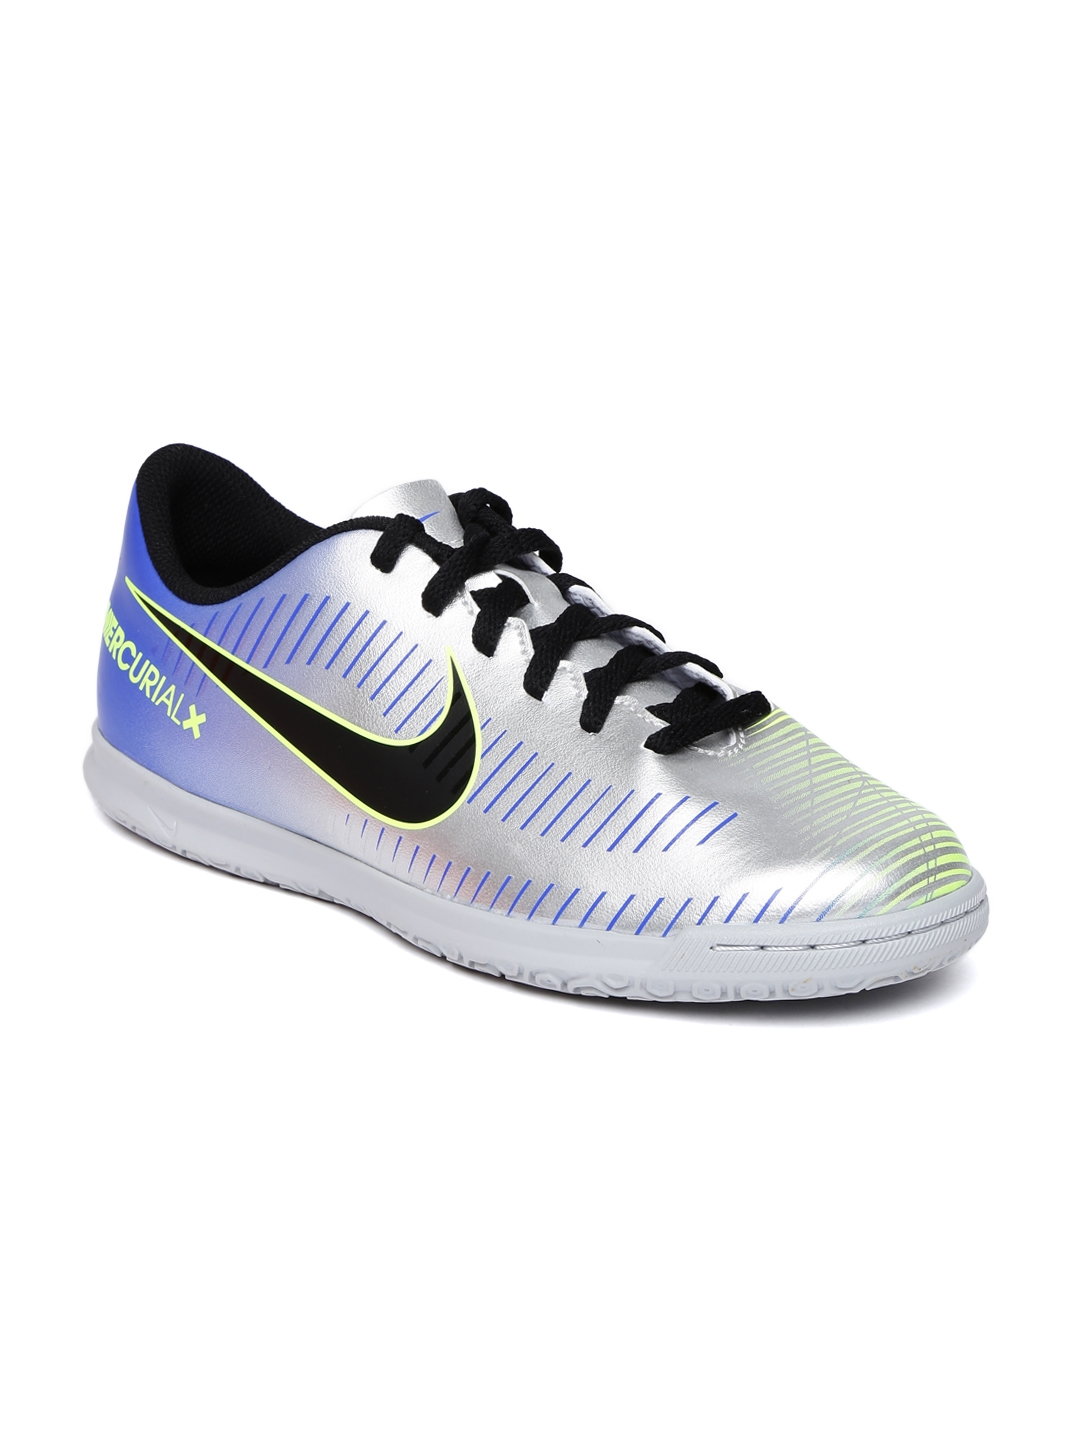 1a41517ed Nike Kids Silver-Toned MERCURIALX VRTX III neymar indoor court Football  Shoes